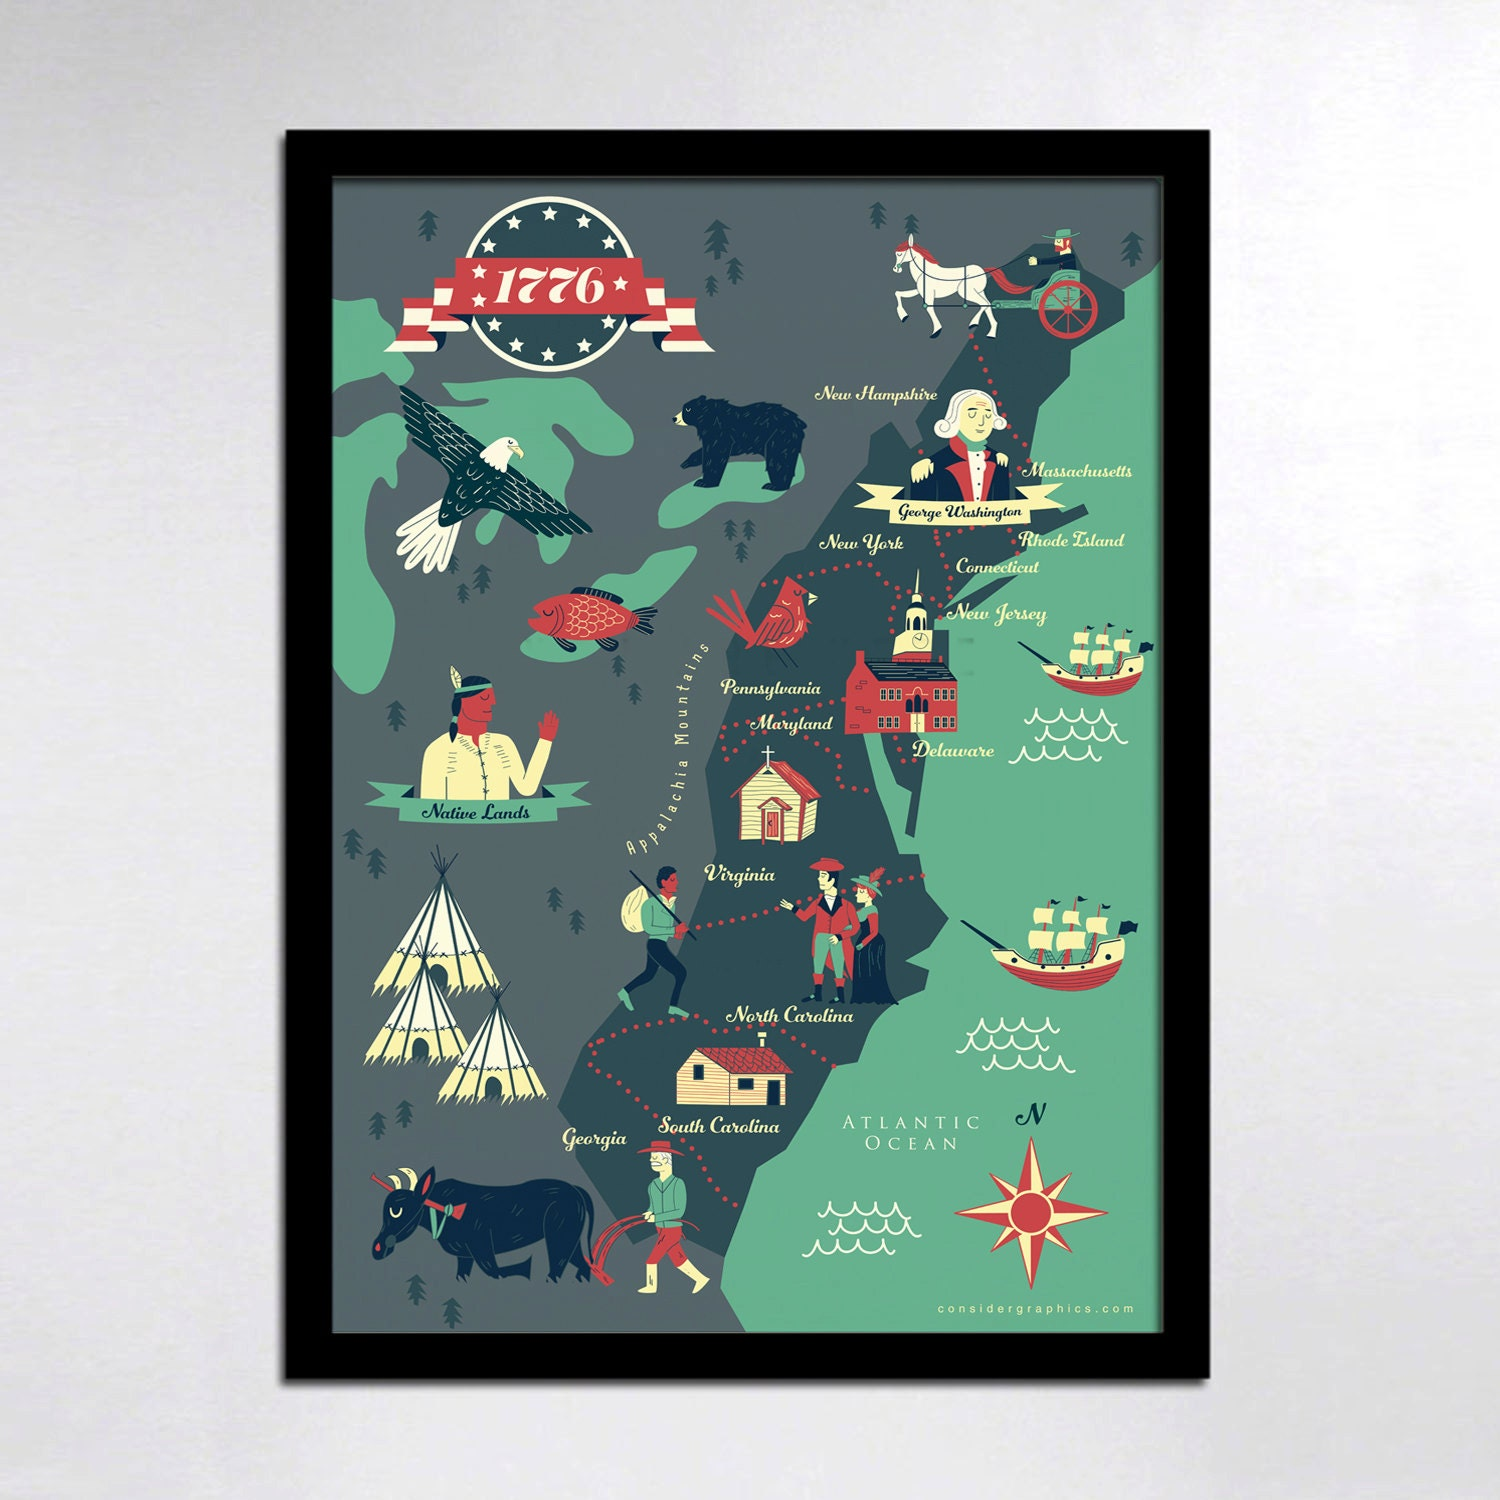 KIDS Map Historical American Map Colonies Map Print KIDS - Wall map children's room